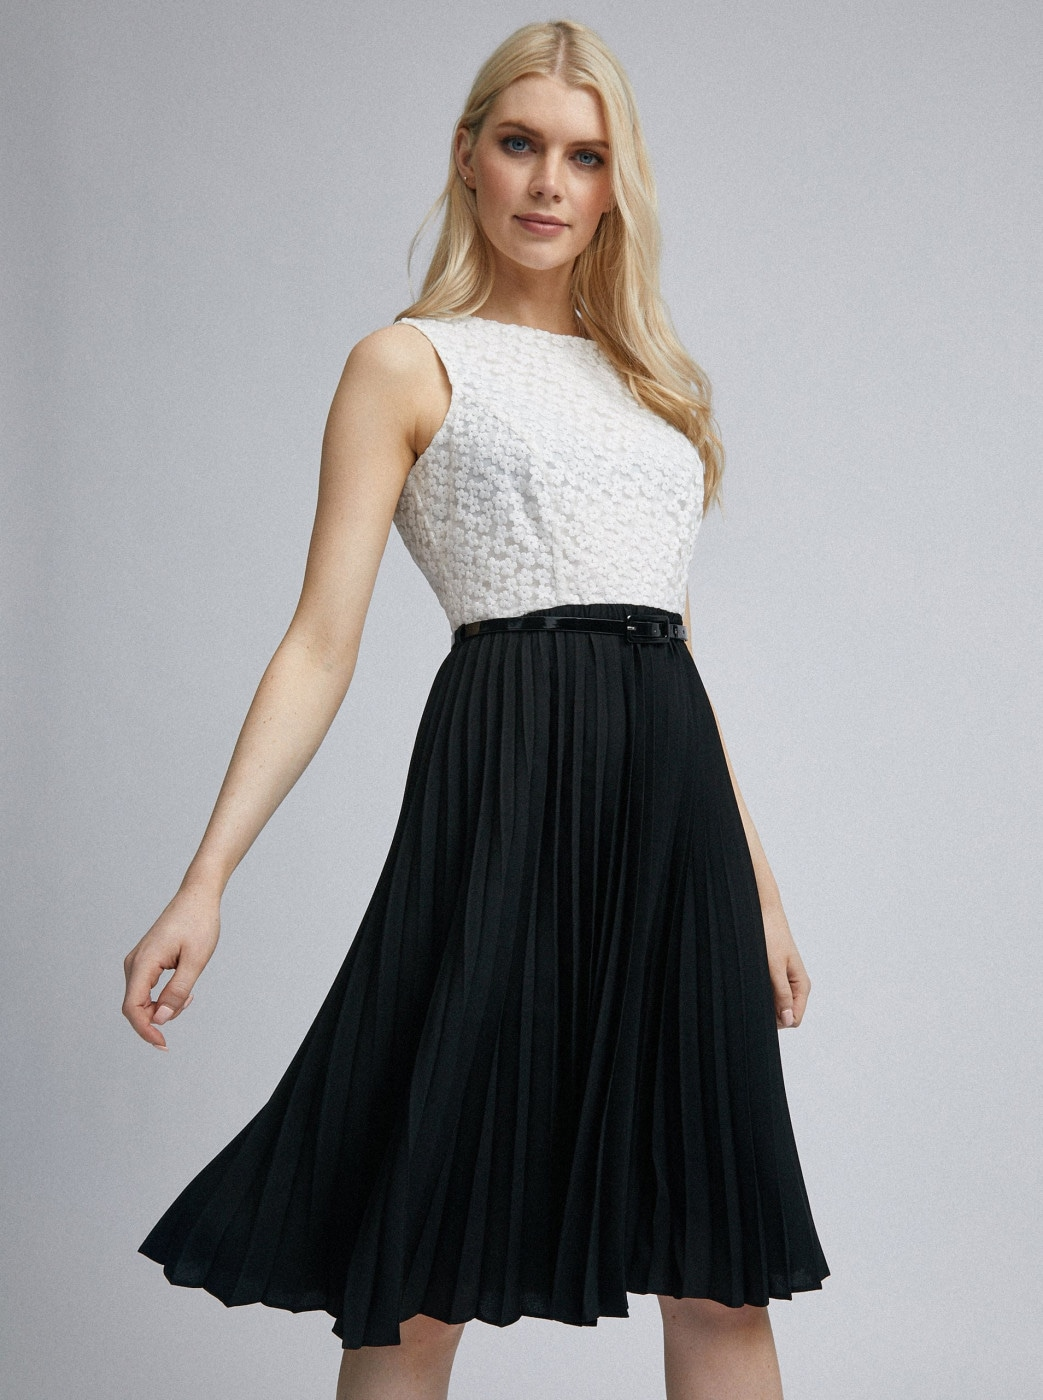 White-black pleated dorothy perkins dress